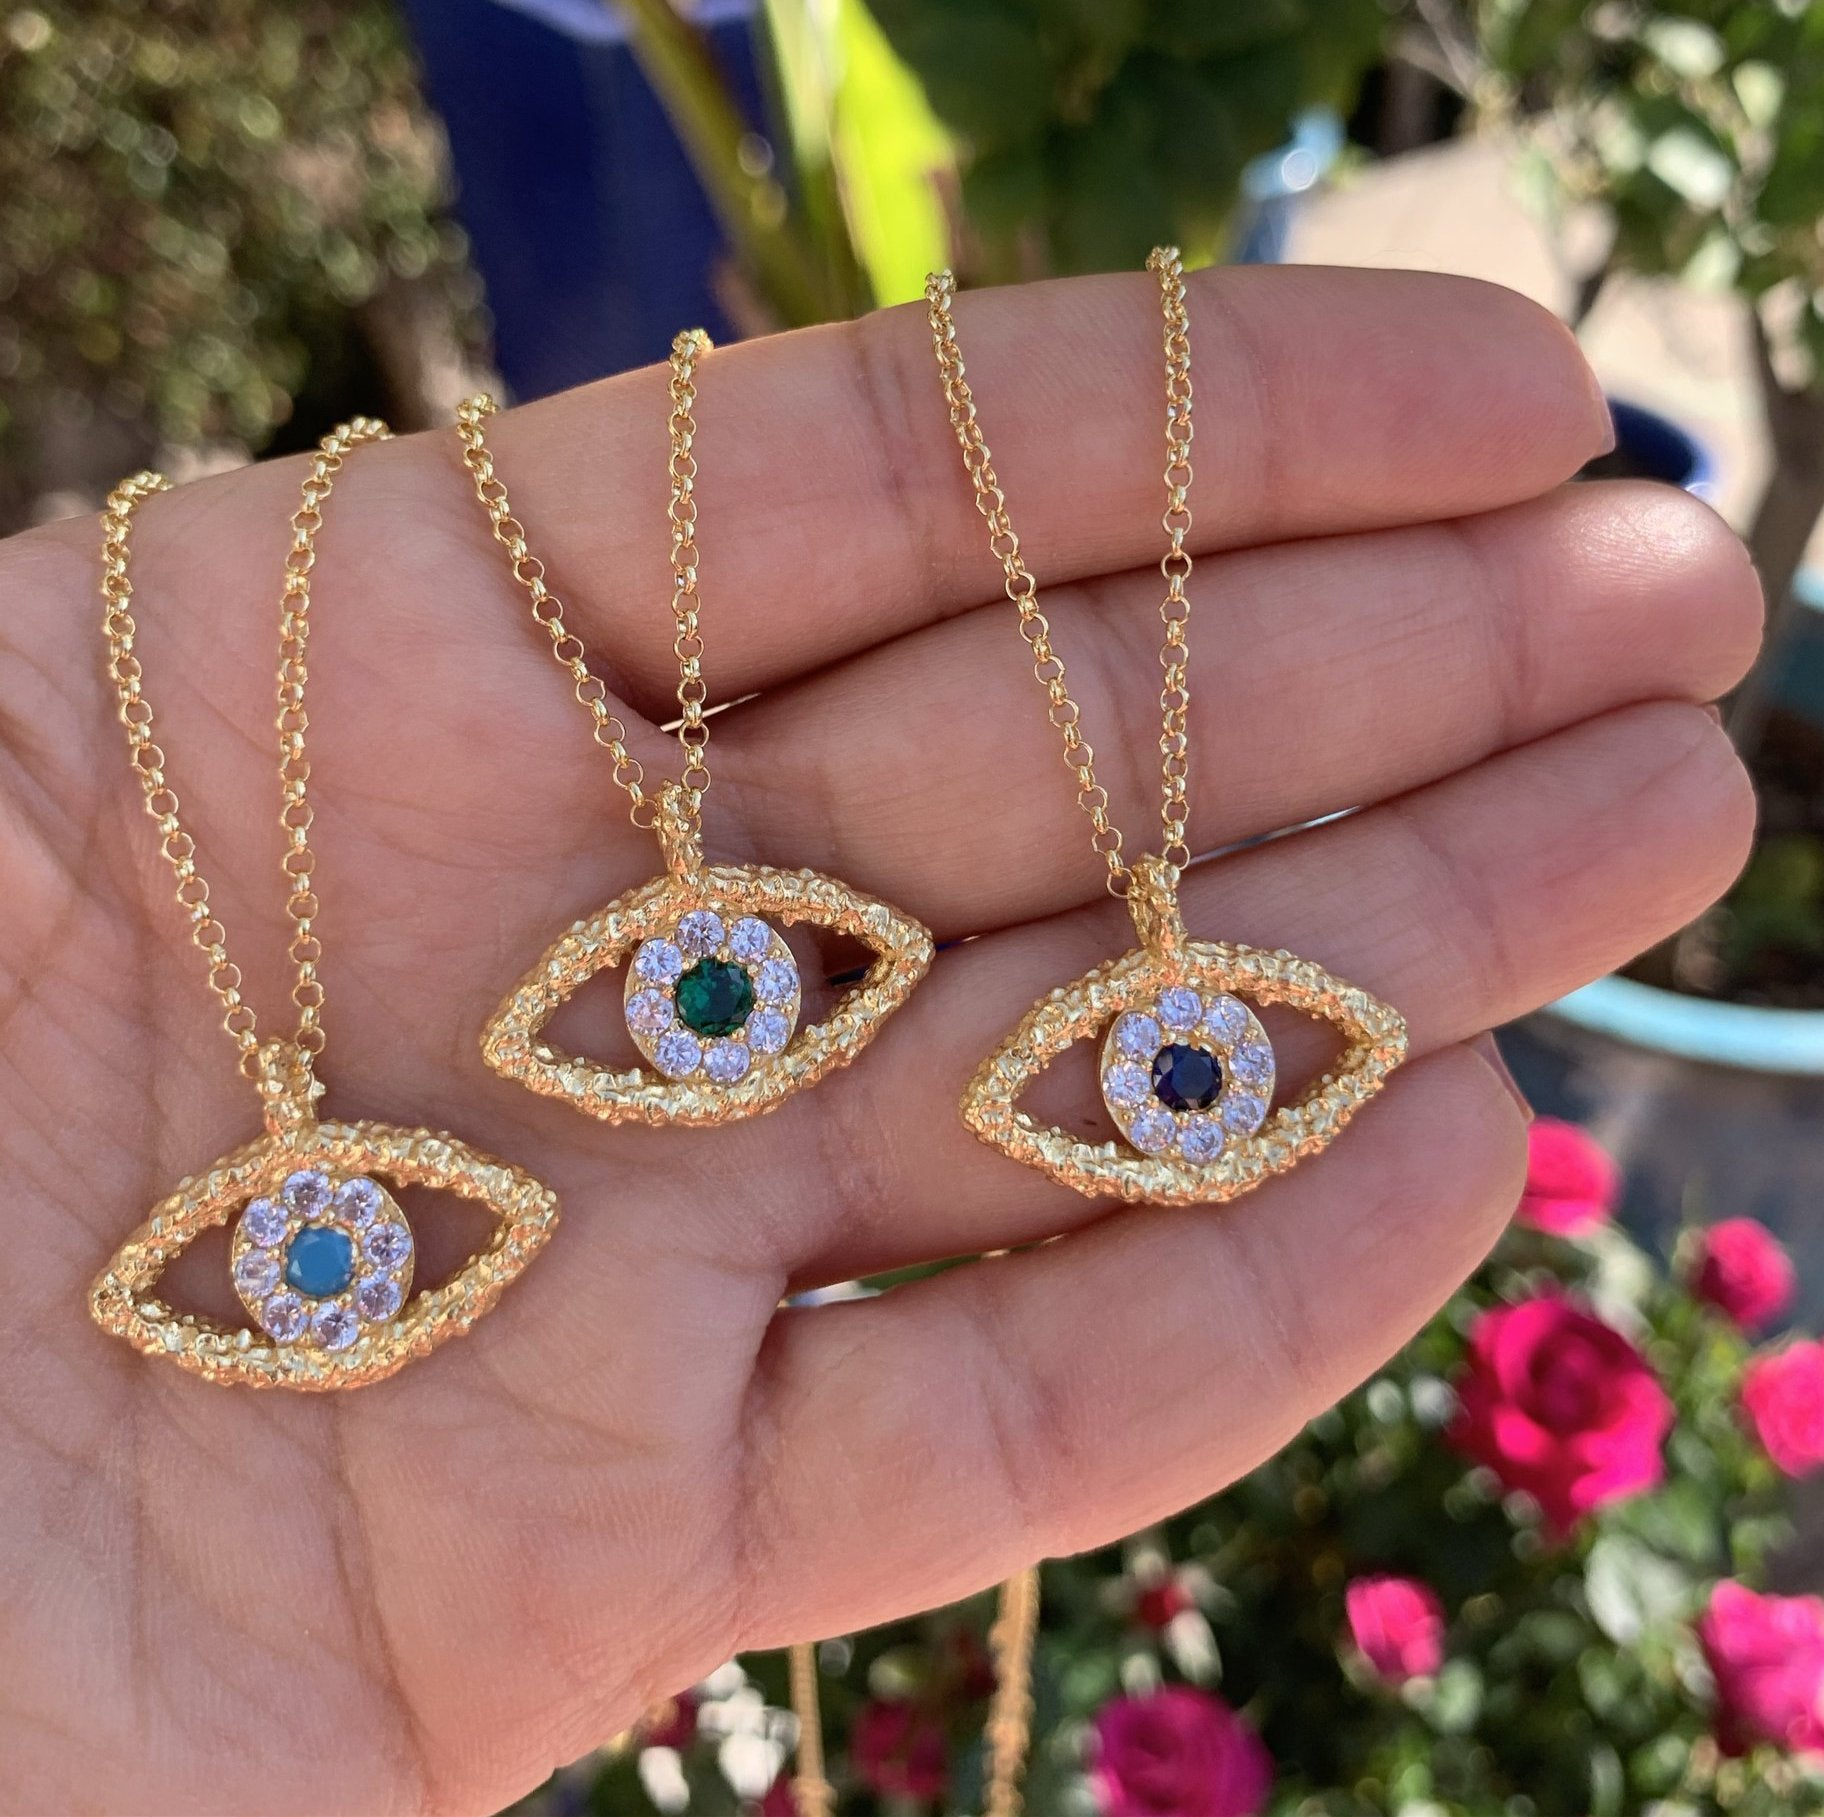 Silver gold plated hammered evil eye necklace